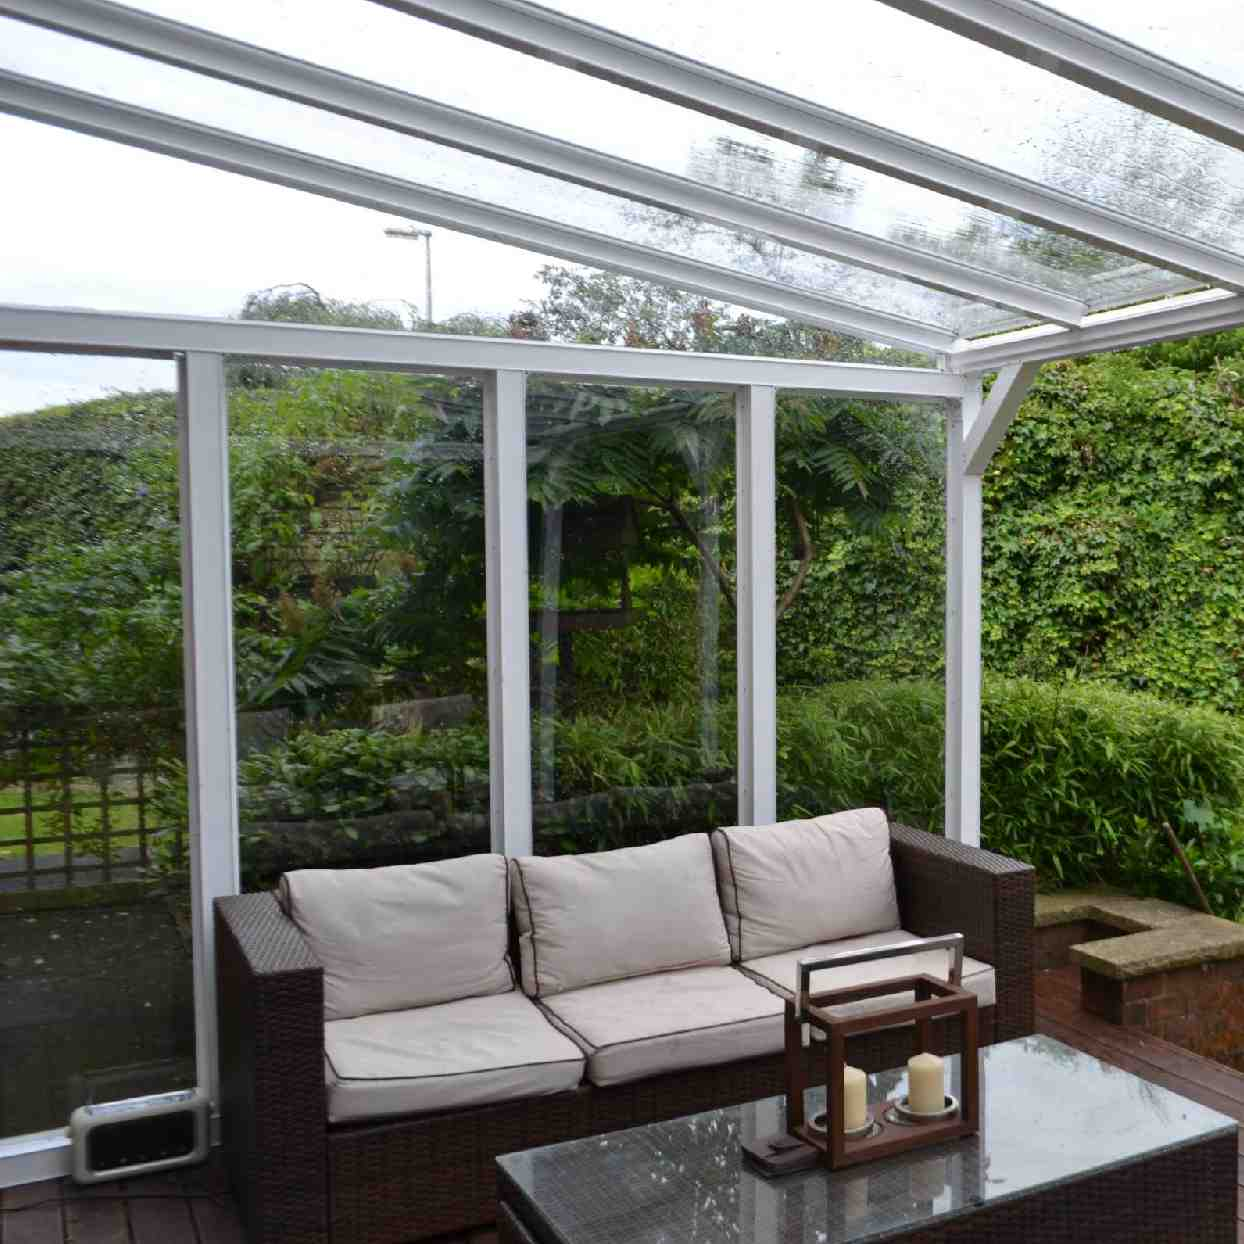 Buy Omega Verandah with 16mm Polycarbonate Glazing - 3.1m (W) x 1.5m (P), (2) Supporting Posts online today